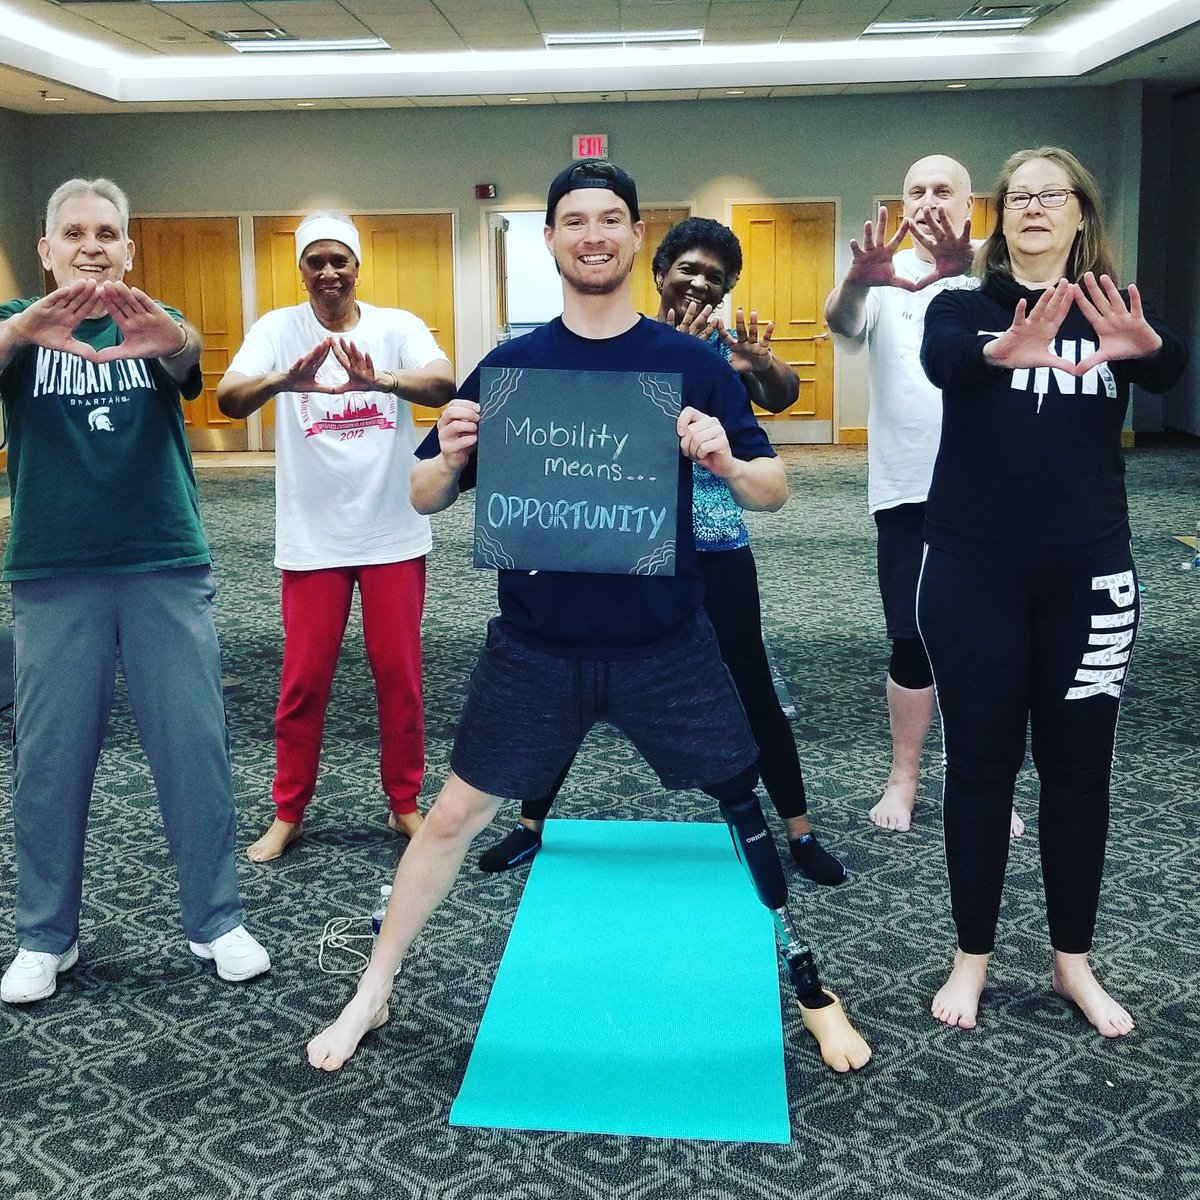 Love doing @ddpyoga with our local senior citizens. An often underserved and overlooked population.  Mobility means OPPORTUNITY to serve and live a life I never knew was possible! @ROMPglobal gives that gift to amputees in developing countries. Please support them.